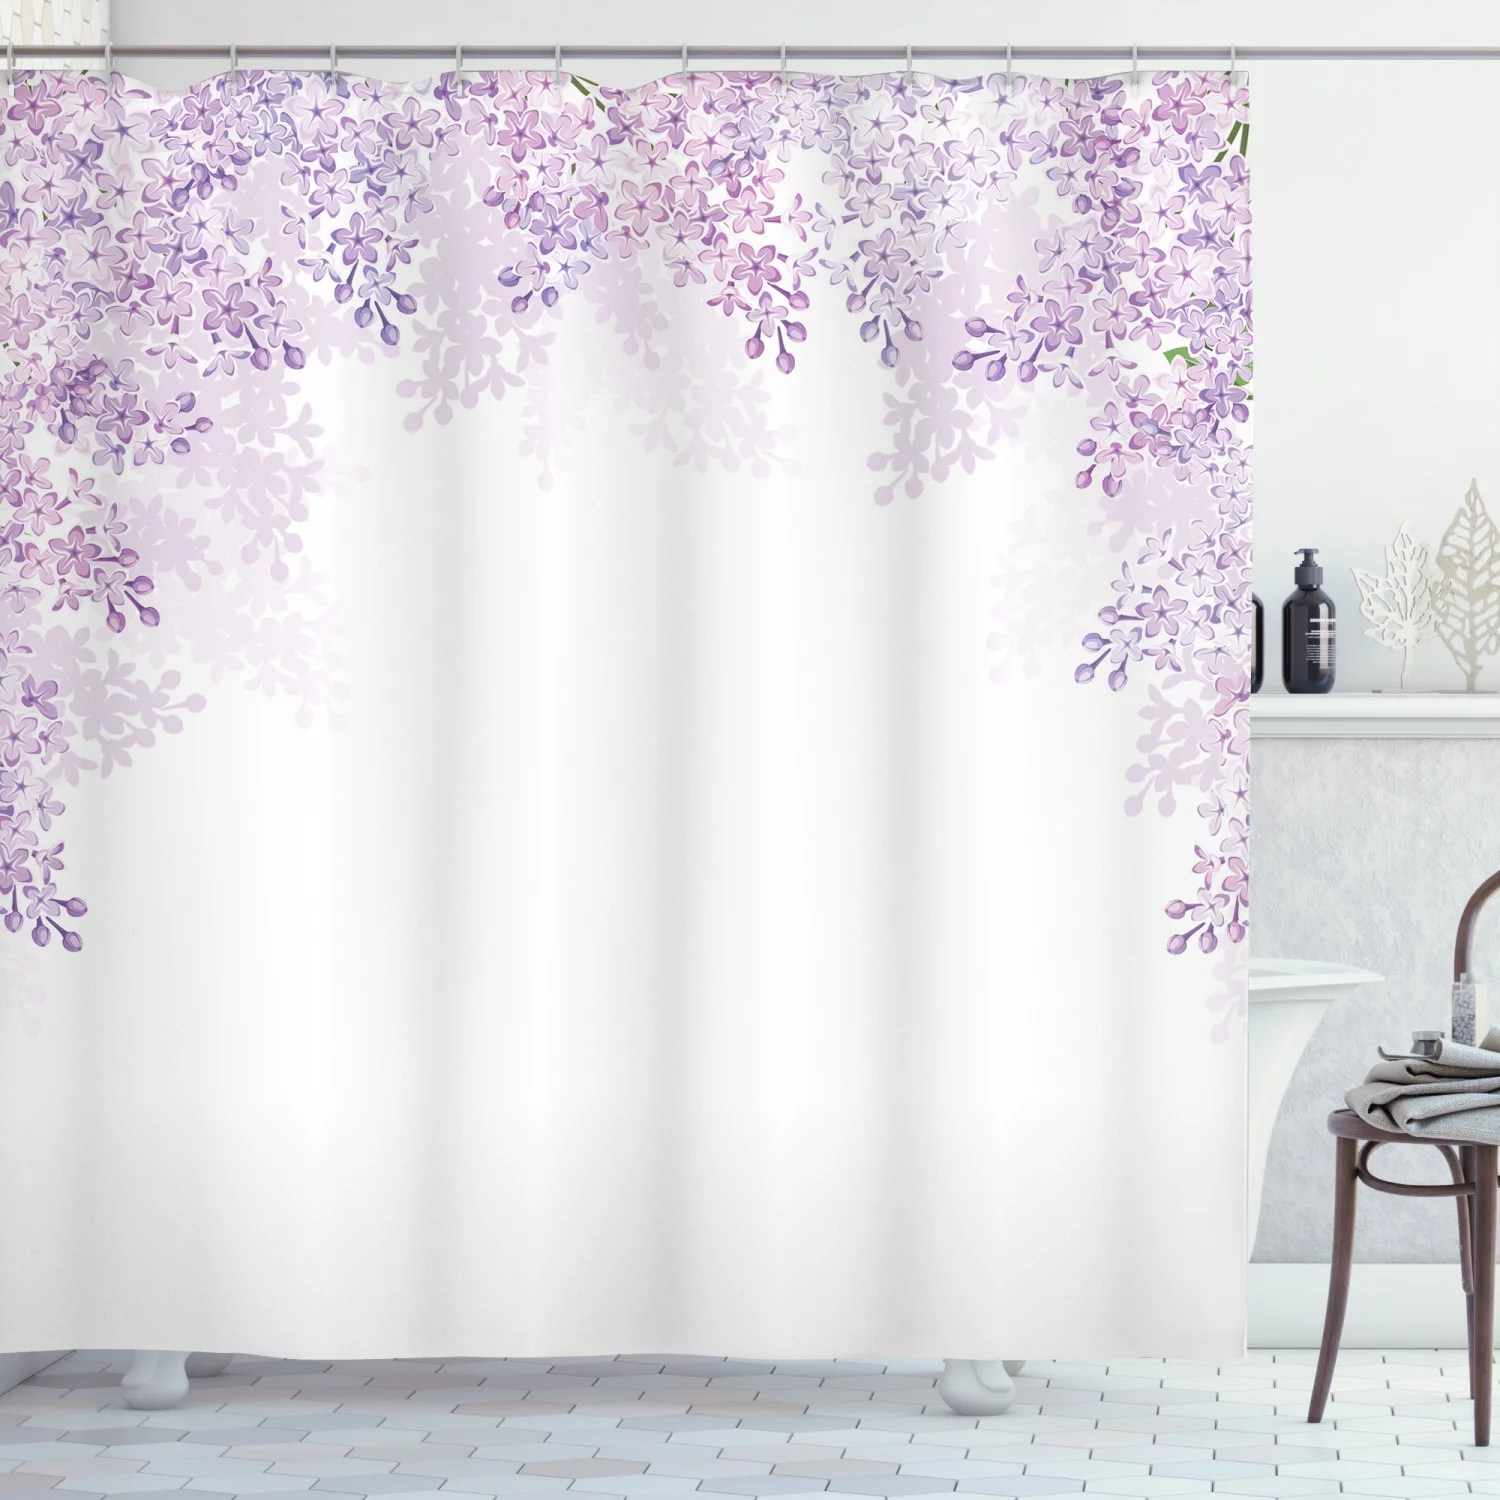 flower shower curtain framing lilac flowers in blossom vernal season soothing color shades fabric bathroom set with hooks pale mauve lavender